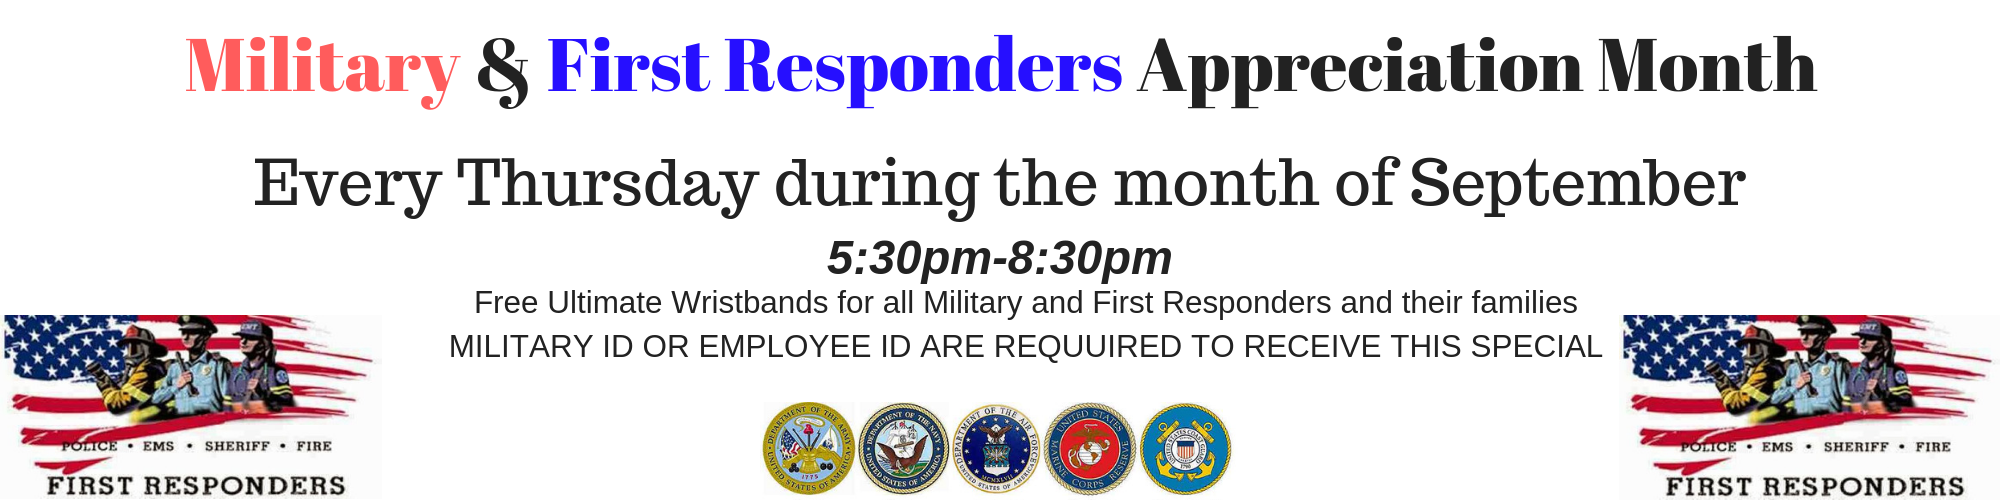 First Responders & Military Appreciation Month (4)